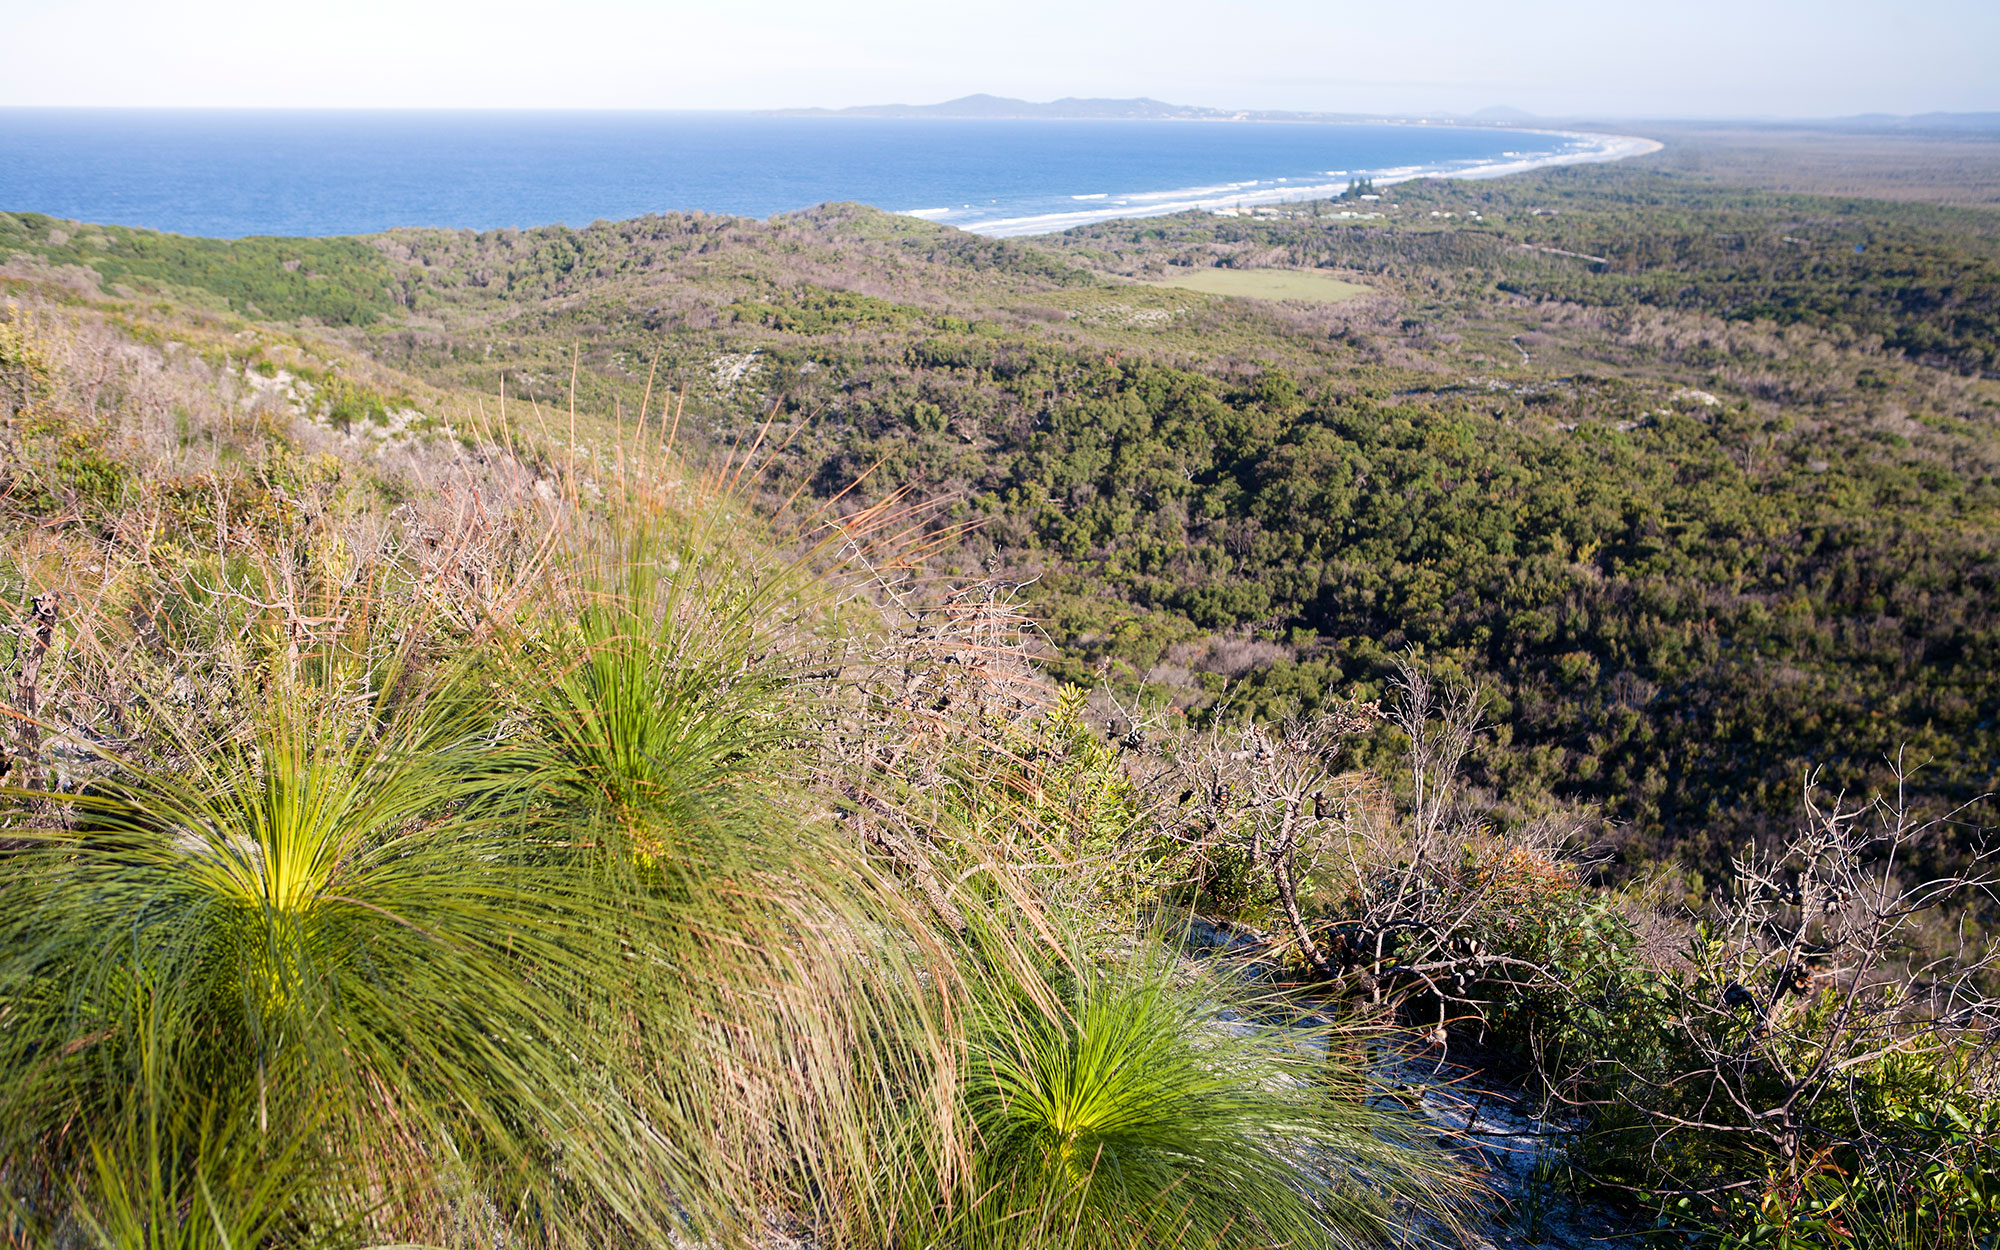 View along Teewah Beach towards Noosa Heads from Mt Seawah on the Cooloola Great Walk.